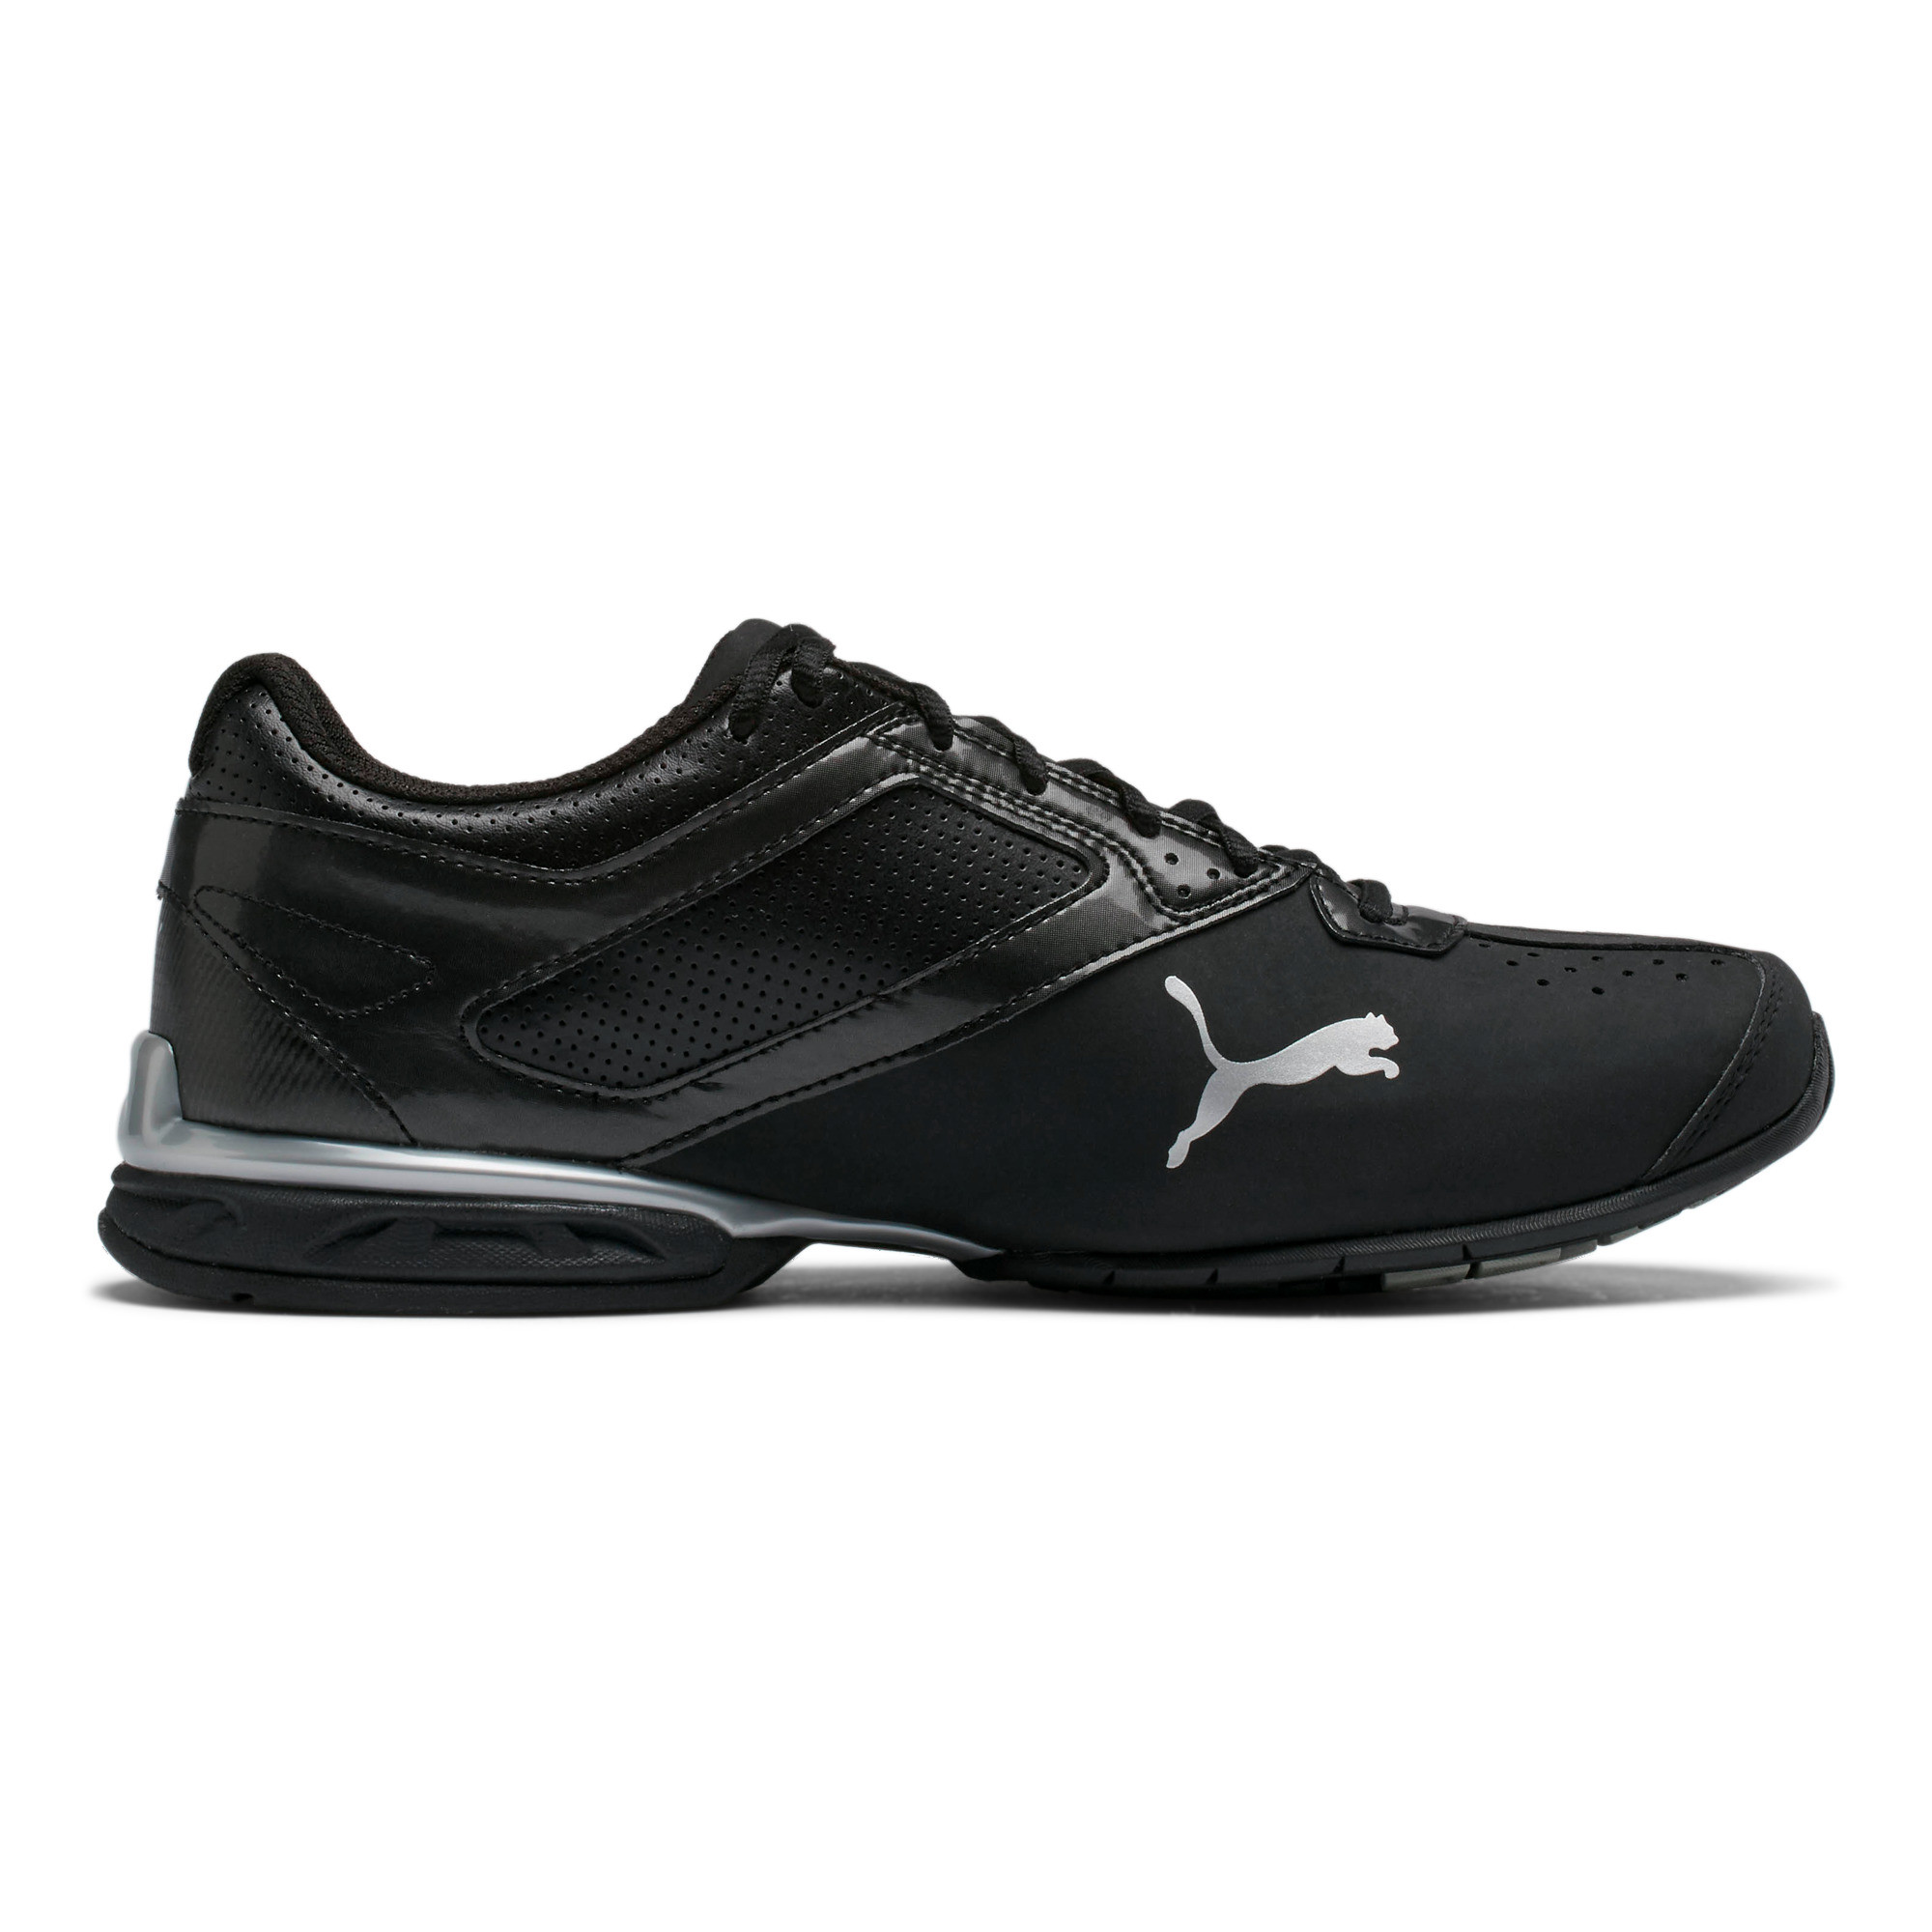 PUMA-Tazon-6-FM-Men-039-s-Sneakers-Men-Shoe-Running thumbnail 11